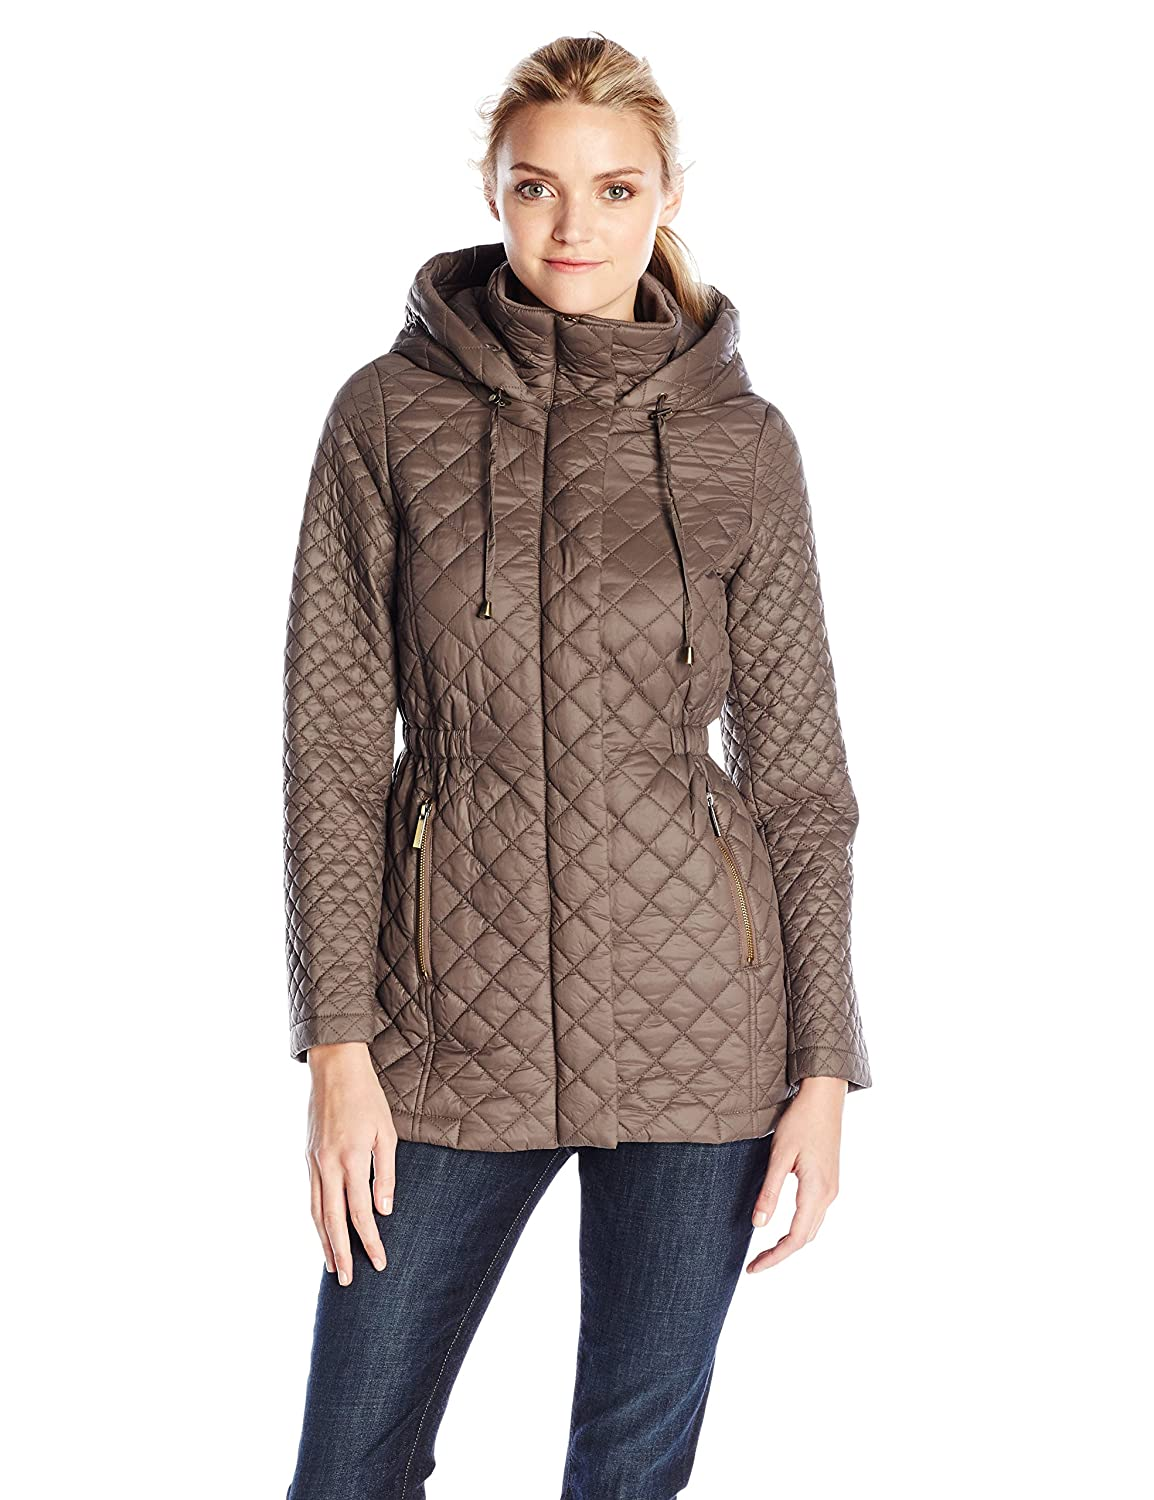 French Connection Women's Marykate Quilted Jacket with Hood French Connection Women' s Outerwear F36226-XB